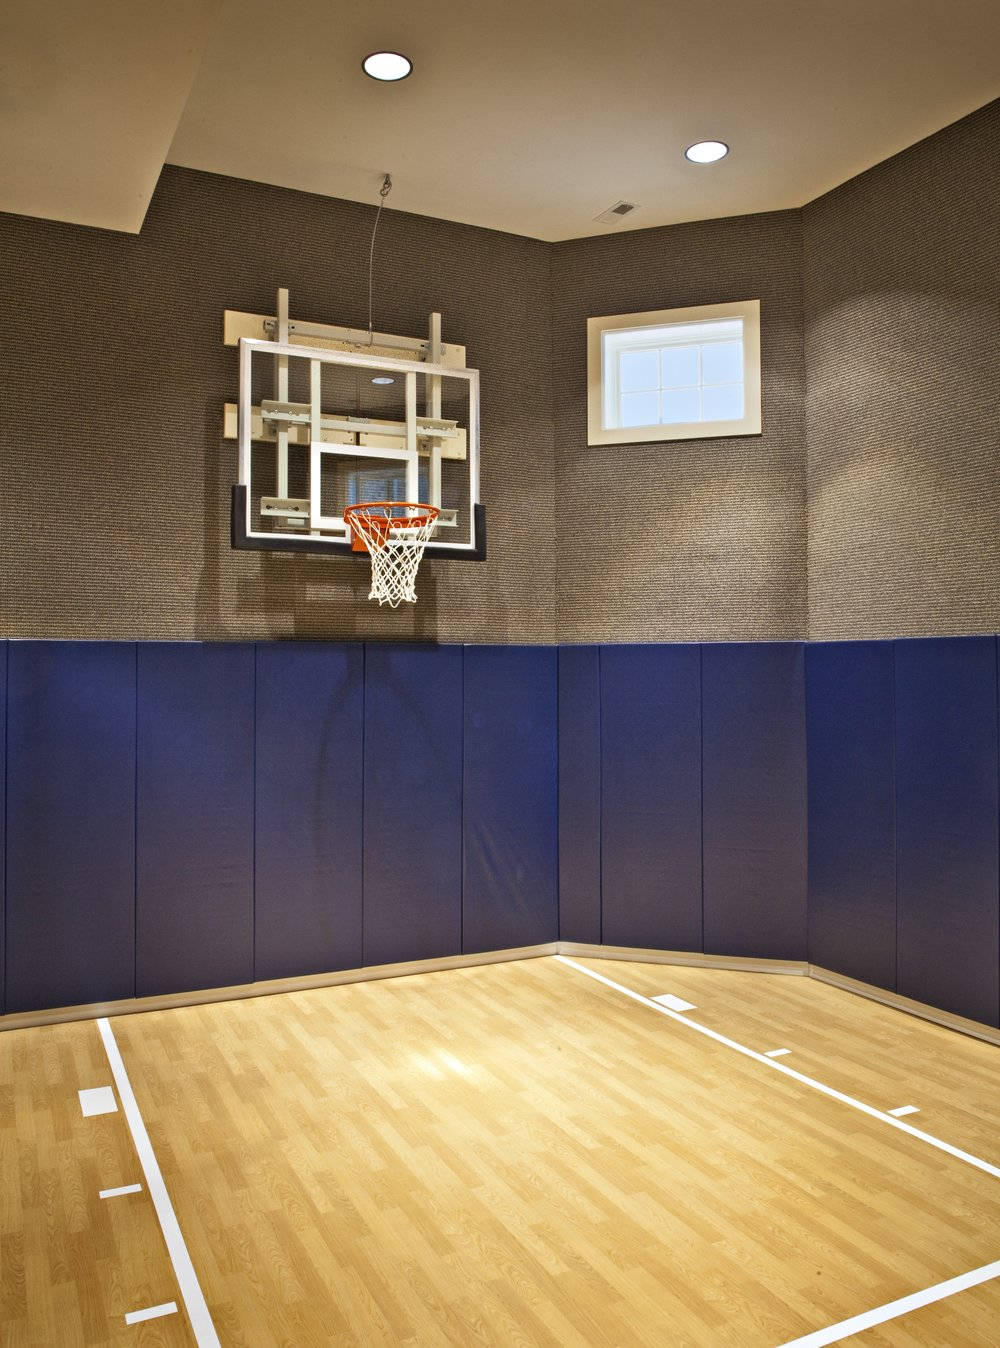 St. Charles IL. Indoor Custom Basket Ball Court